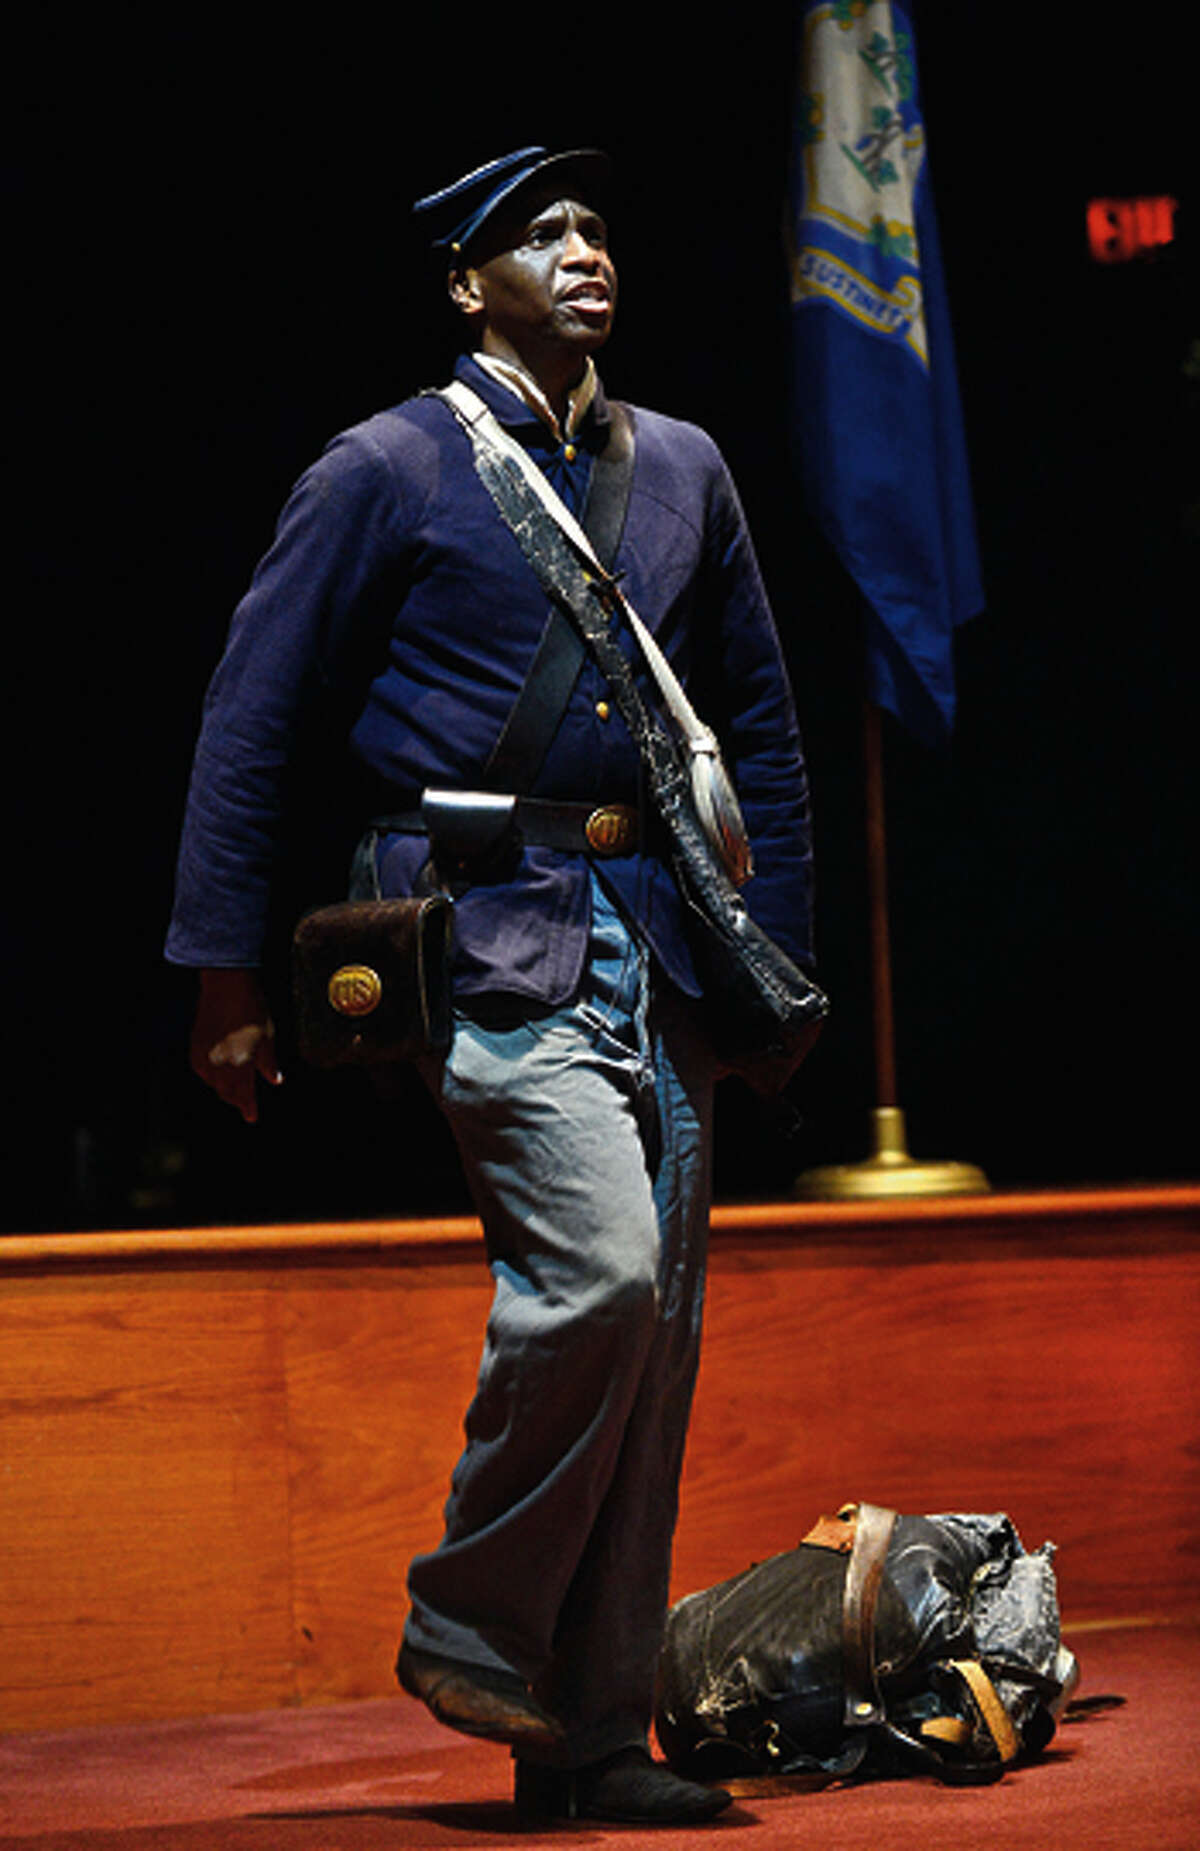 Kevin Johnson, a Civil War reenactor, tells the story of William Webb, an African-American Civil War soldier, to the Lifetime Learners Institute at Norwalk Community College Friday afternoon. His presentation looked at the struggles that Webb had to endure as a black infantryman in the Union Army. Hour photo / Erik Trautmann